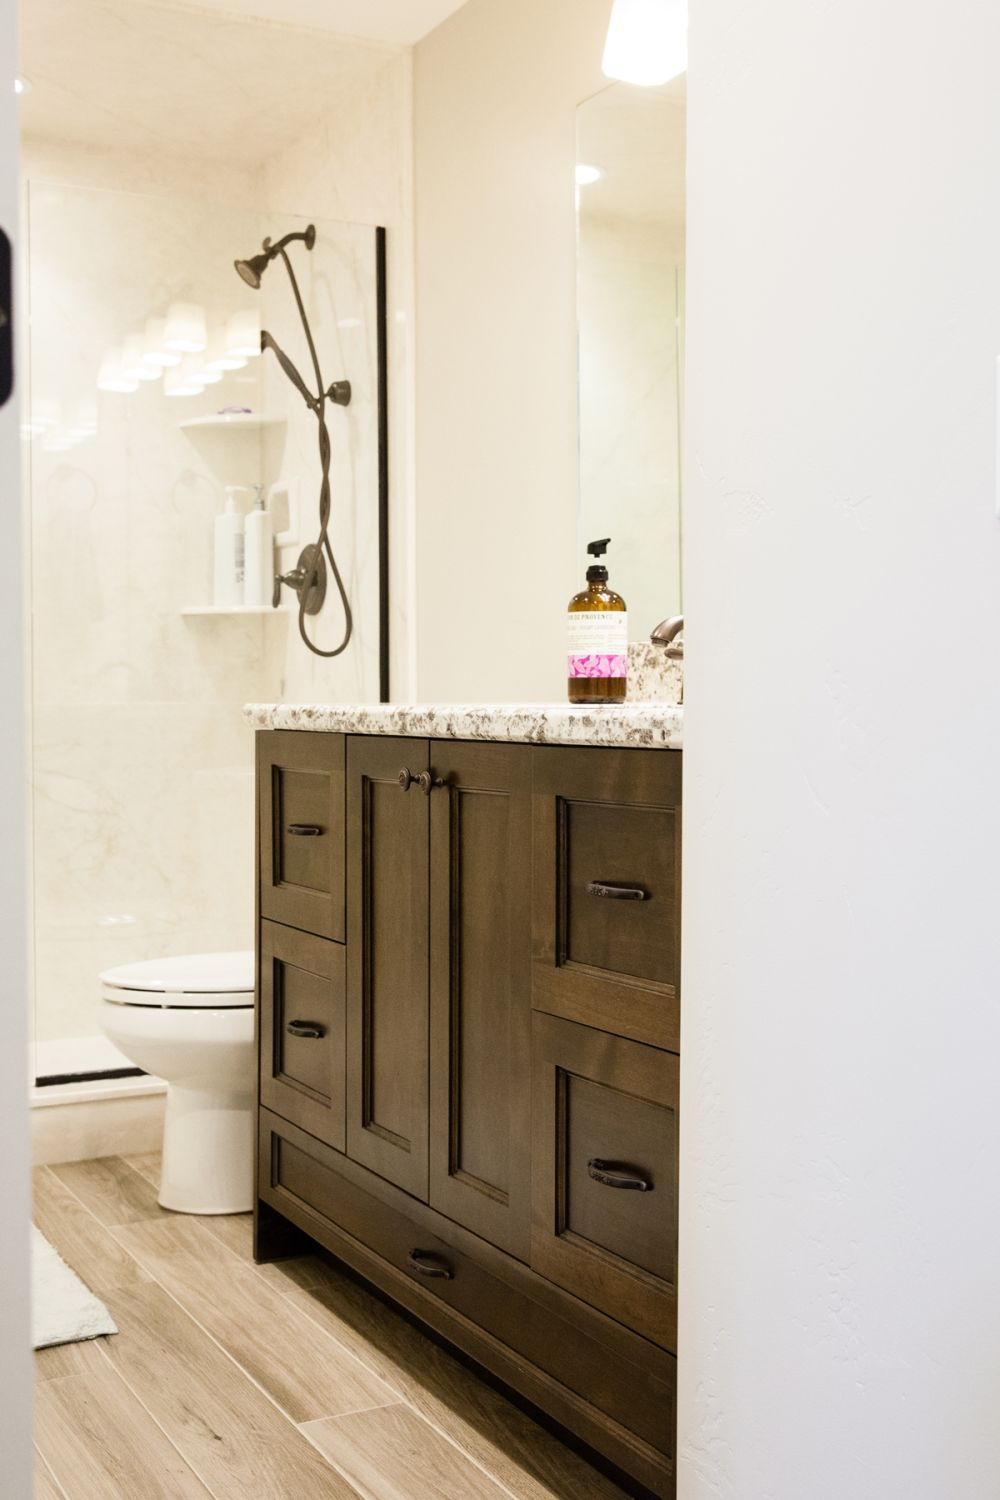 https://cdn.homedit.com/wp-content/uploads/2016/11/How-to-Decorate-a-Bathroom-Without-Clutter-Tips.jpg